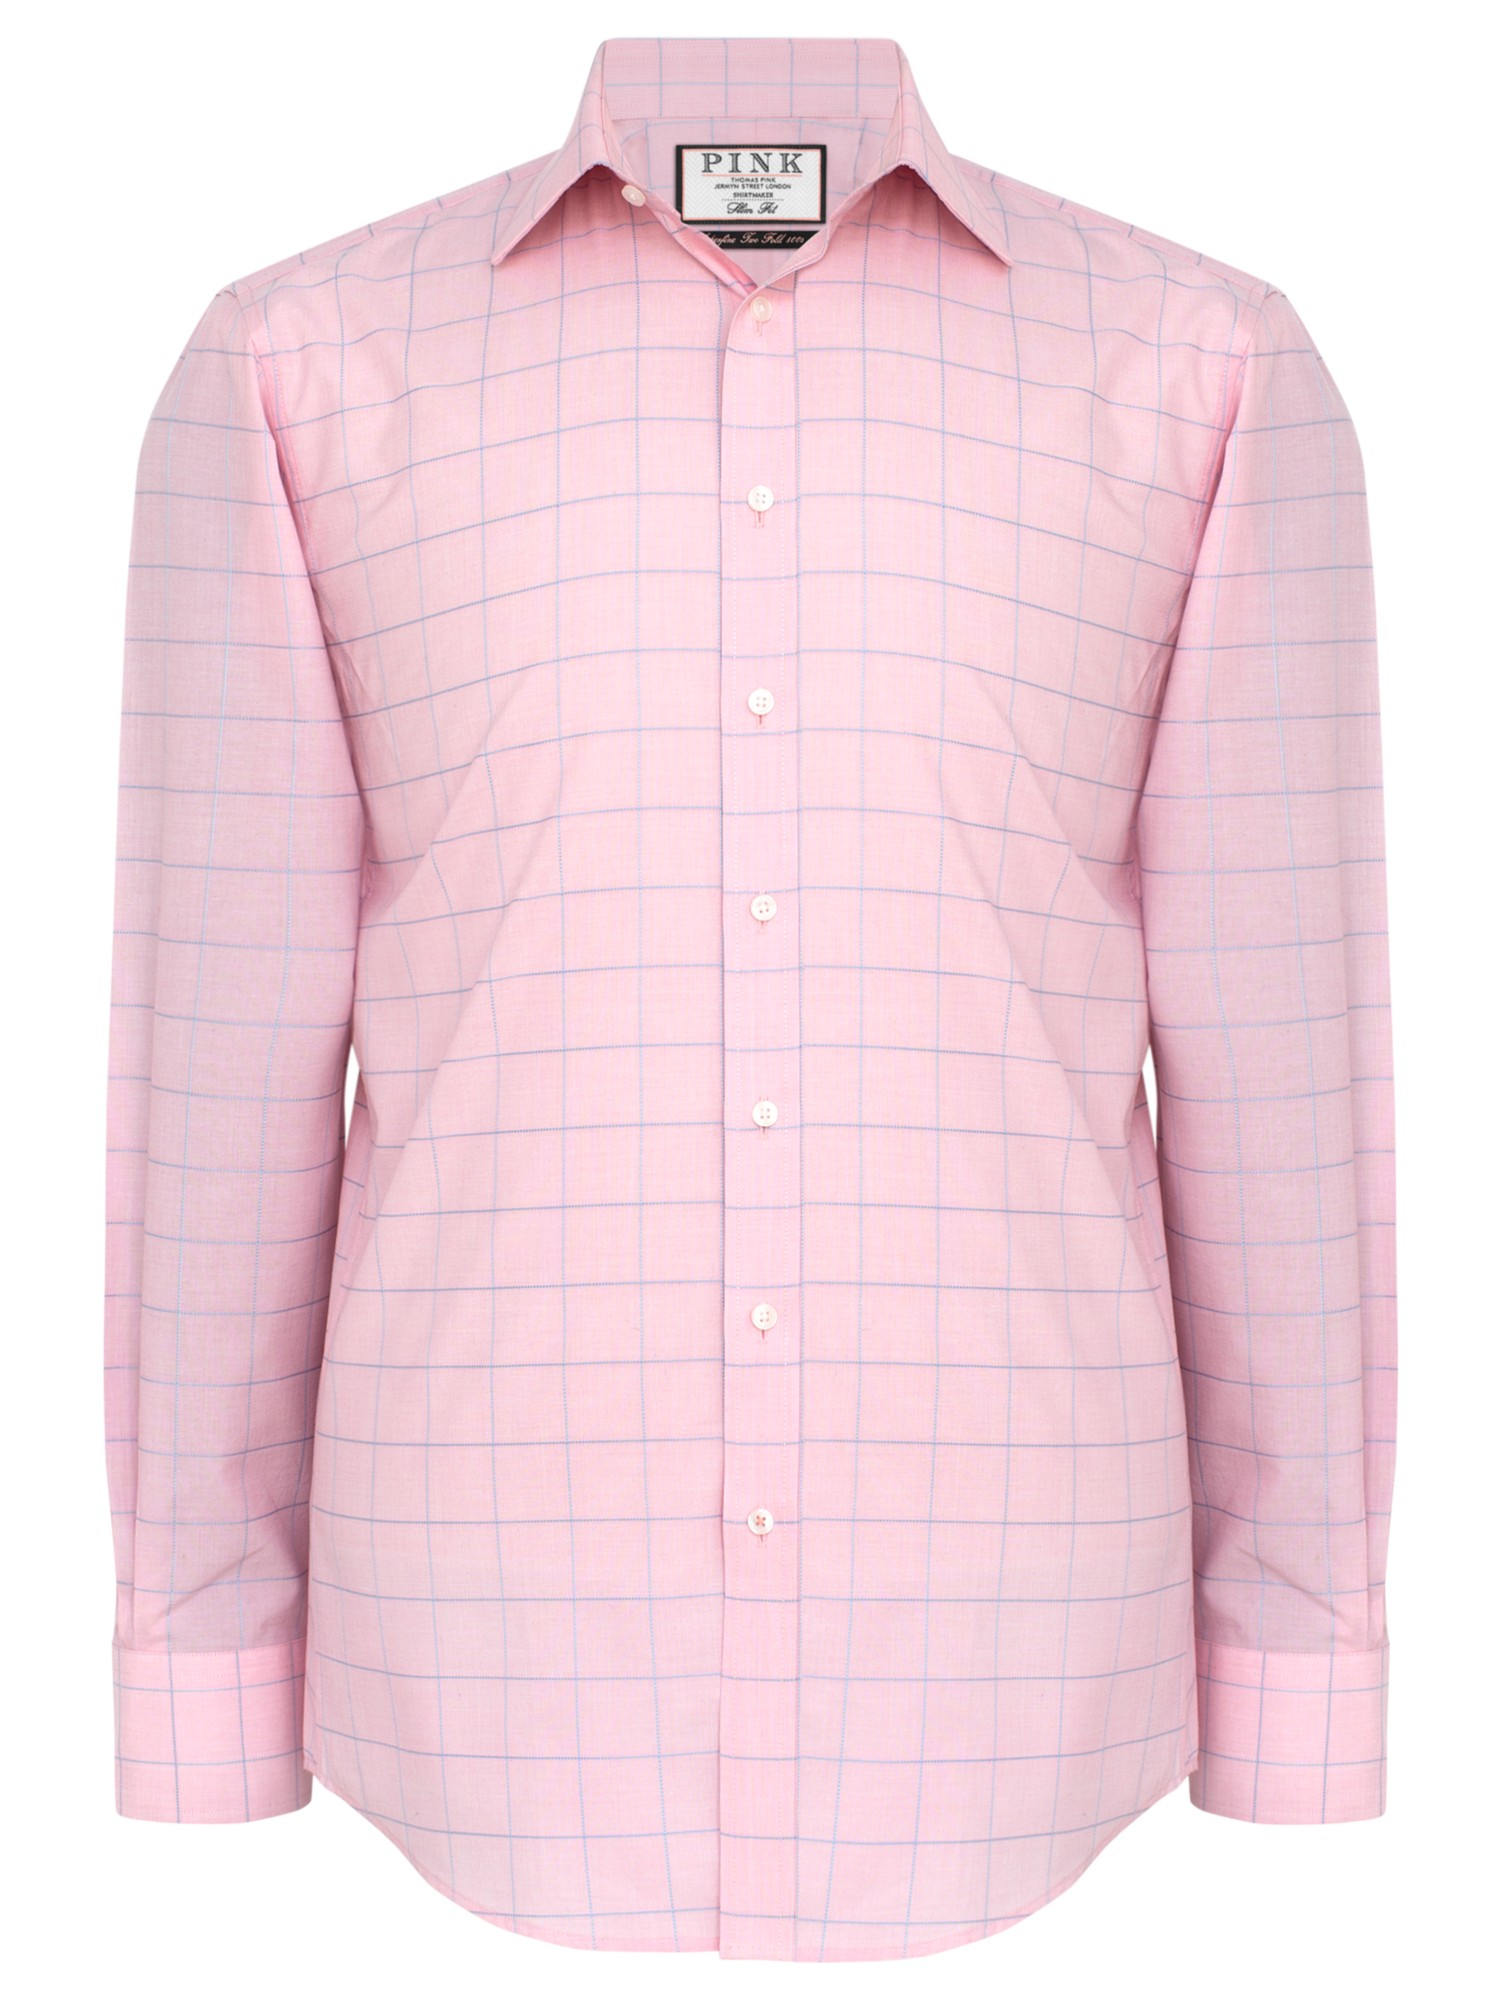 Find great deals on eBay for men pink slim fit shirt. Shop with confidence.